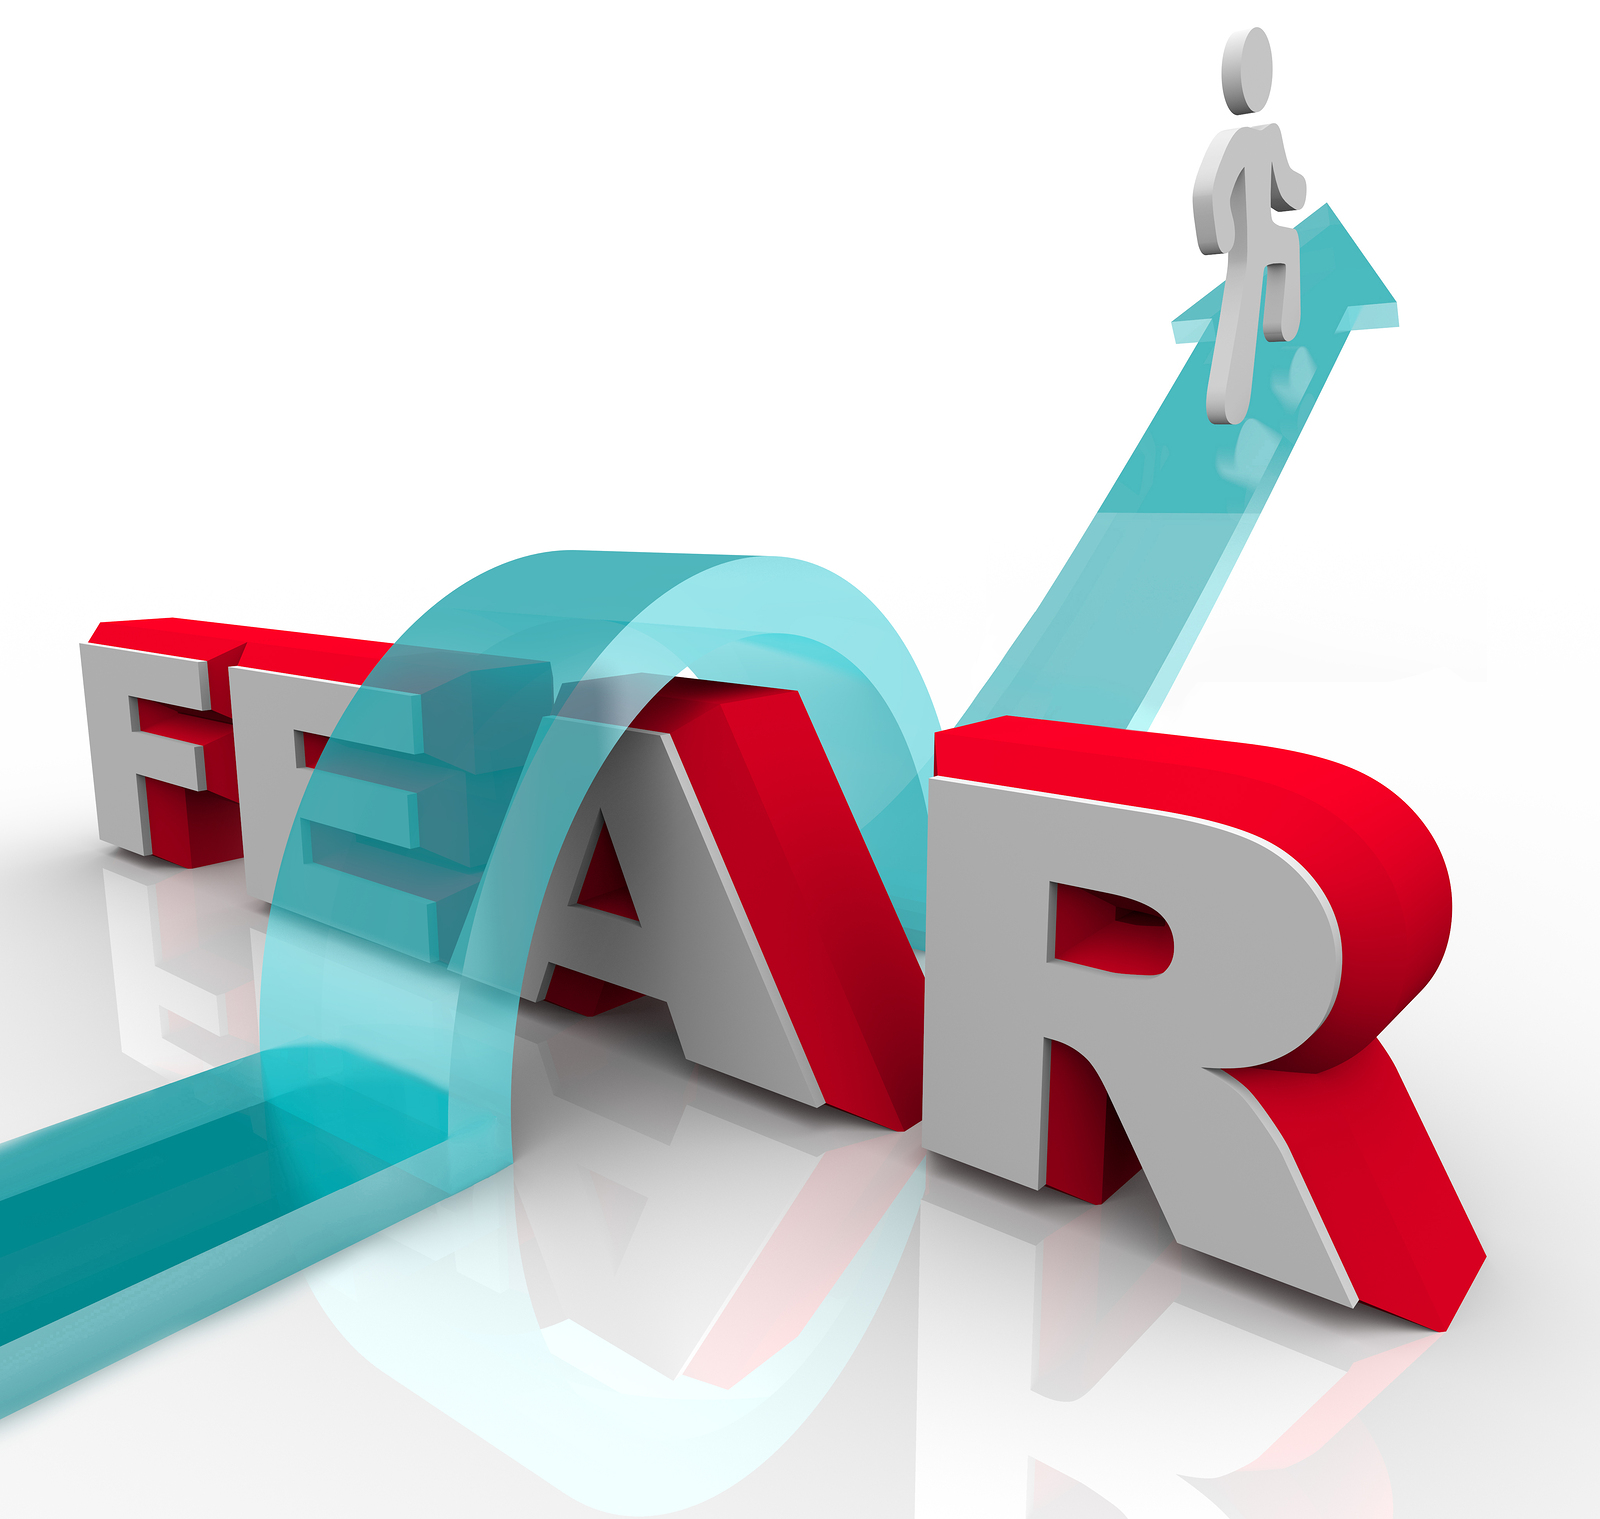 bigstock-A-man-jumps-over-the-word-fear-21701165